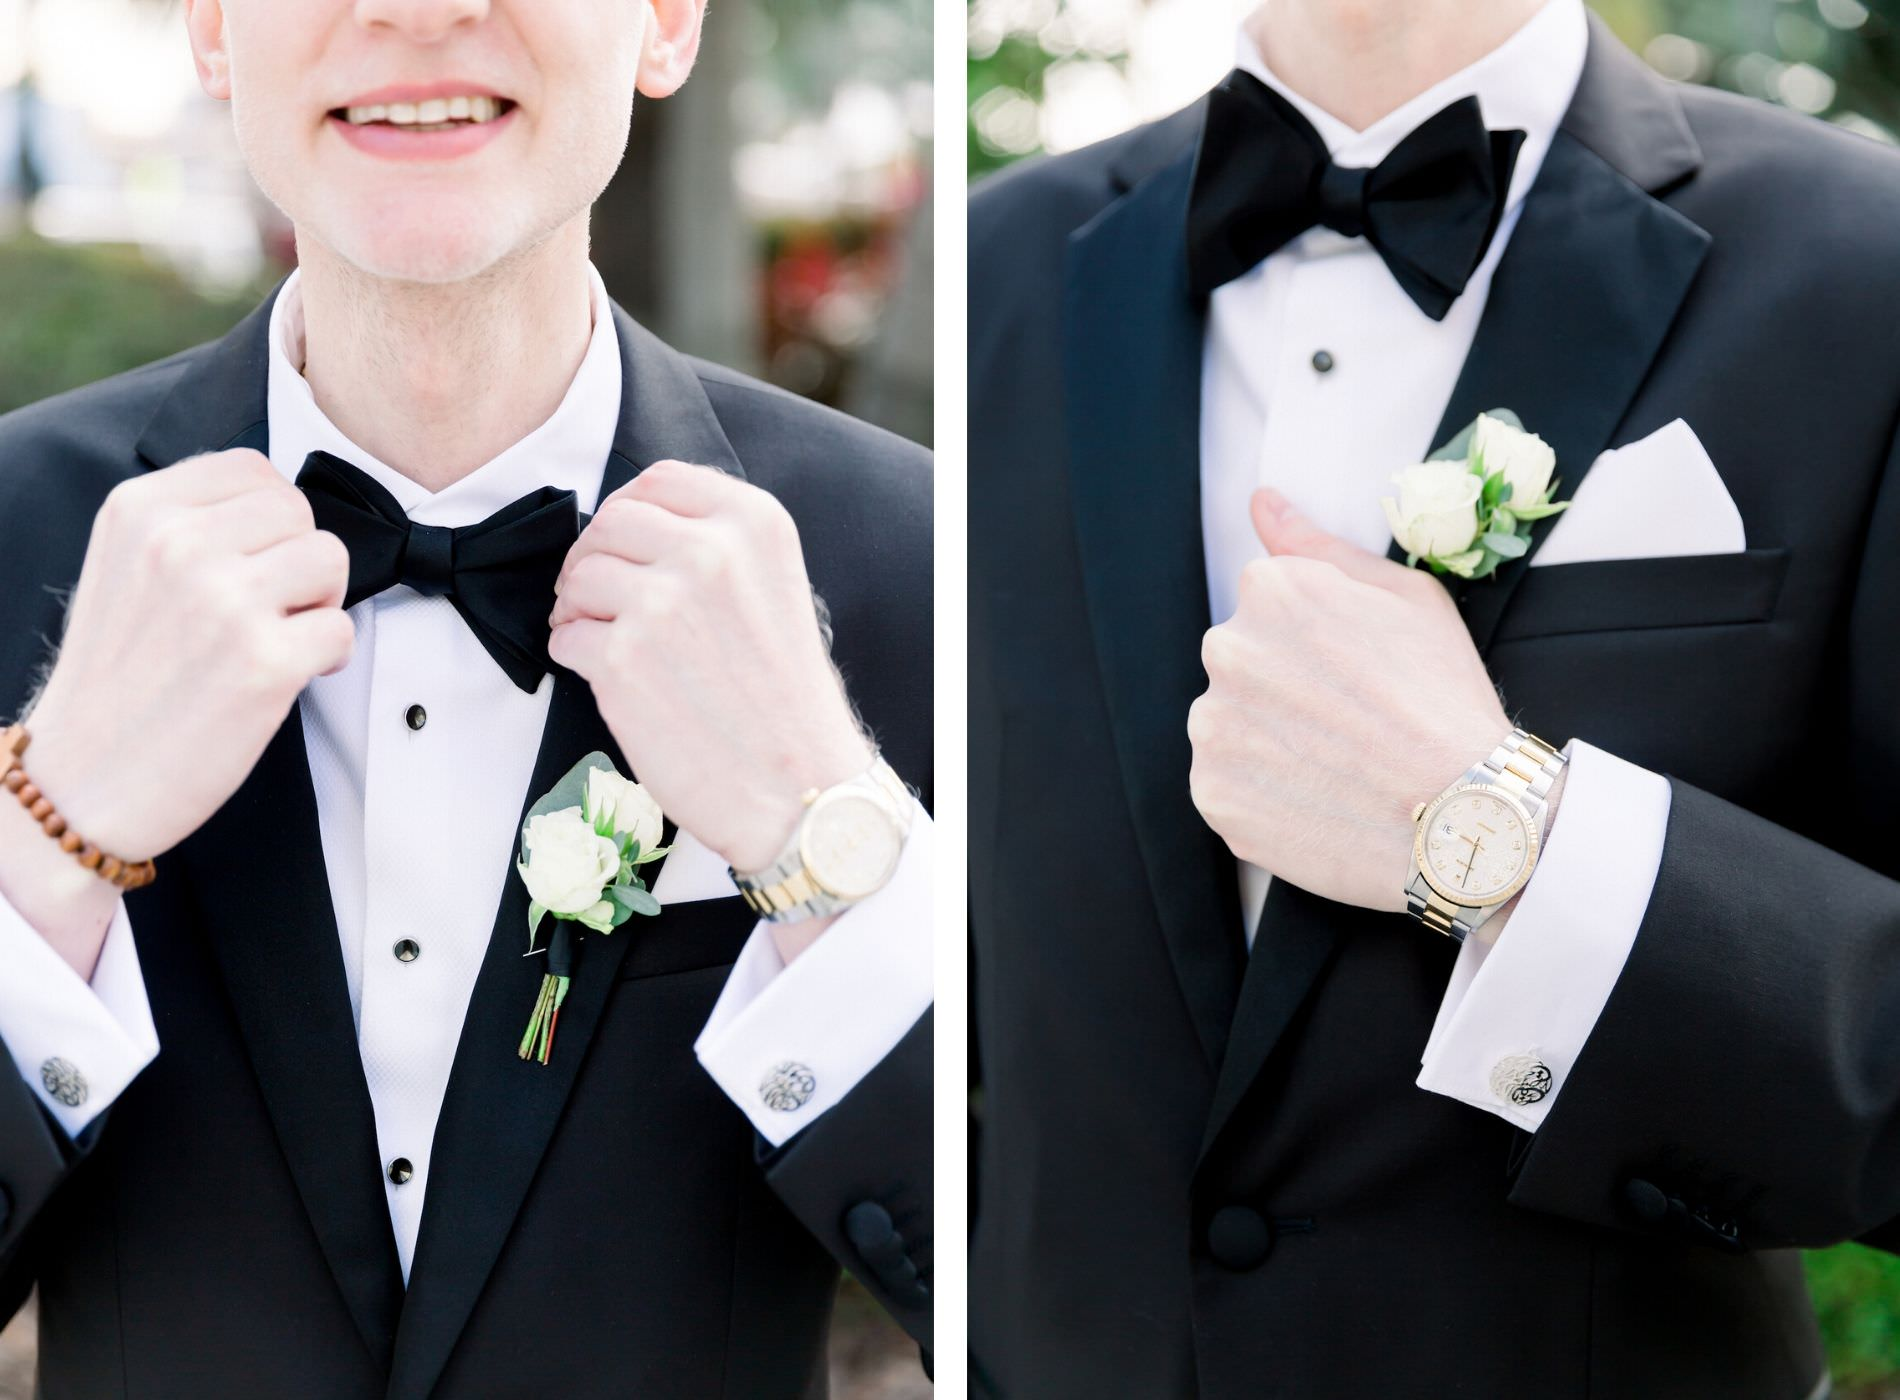 Classic Groom in Black Tuxedo and Bowtie and White Rose Boutonniere | Wedding Photographer Shauna and Jordon Photography | Tampa Wedding Planner UNIQUE Weddings + Events